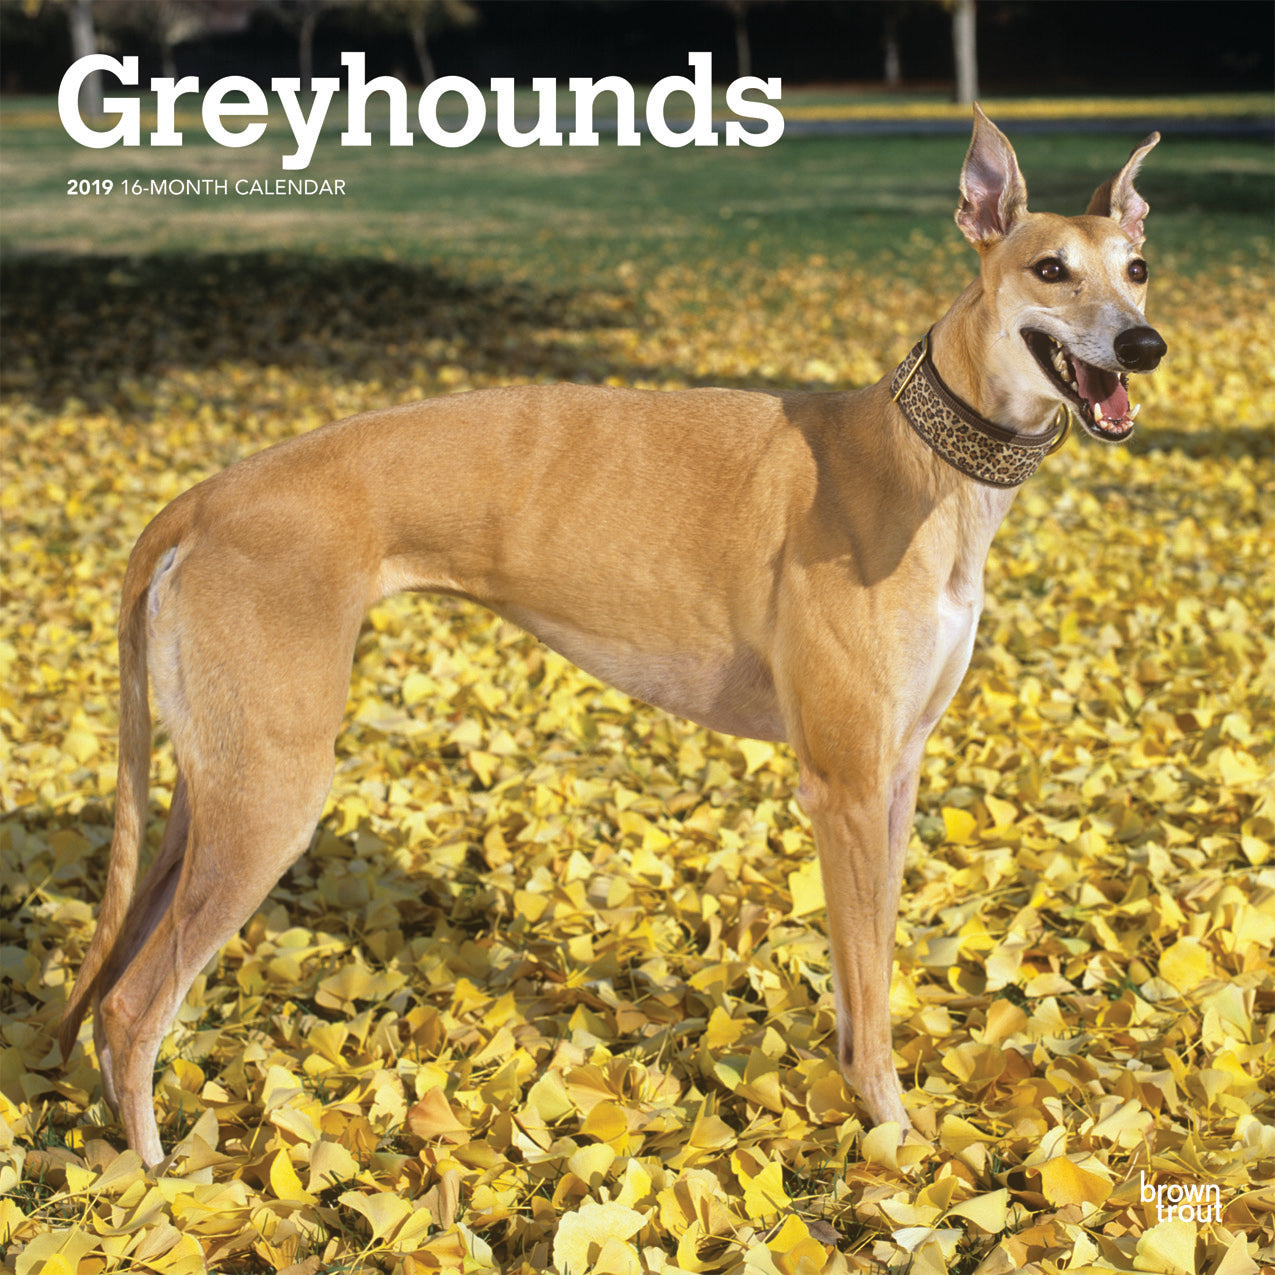 Greyhounds 2019 Wall Calendar